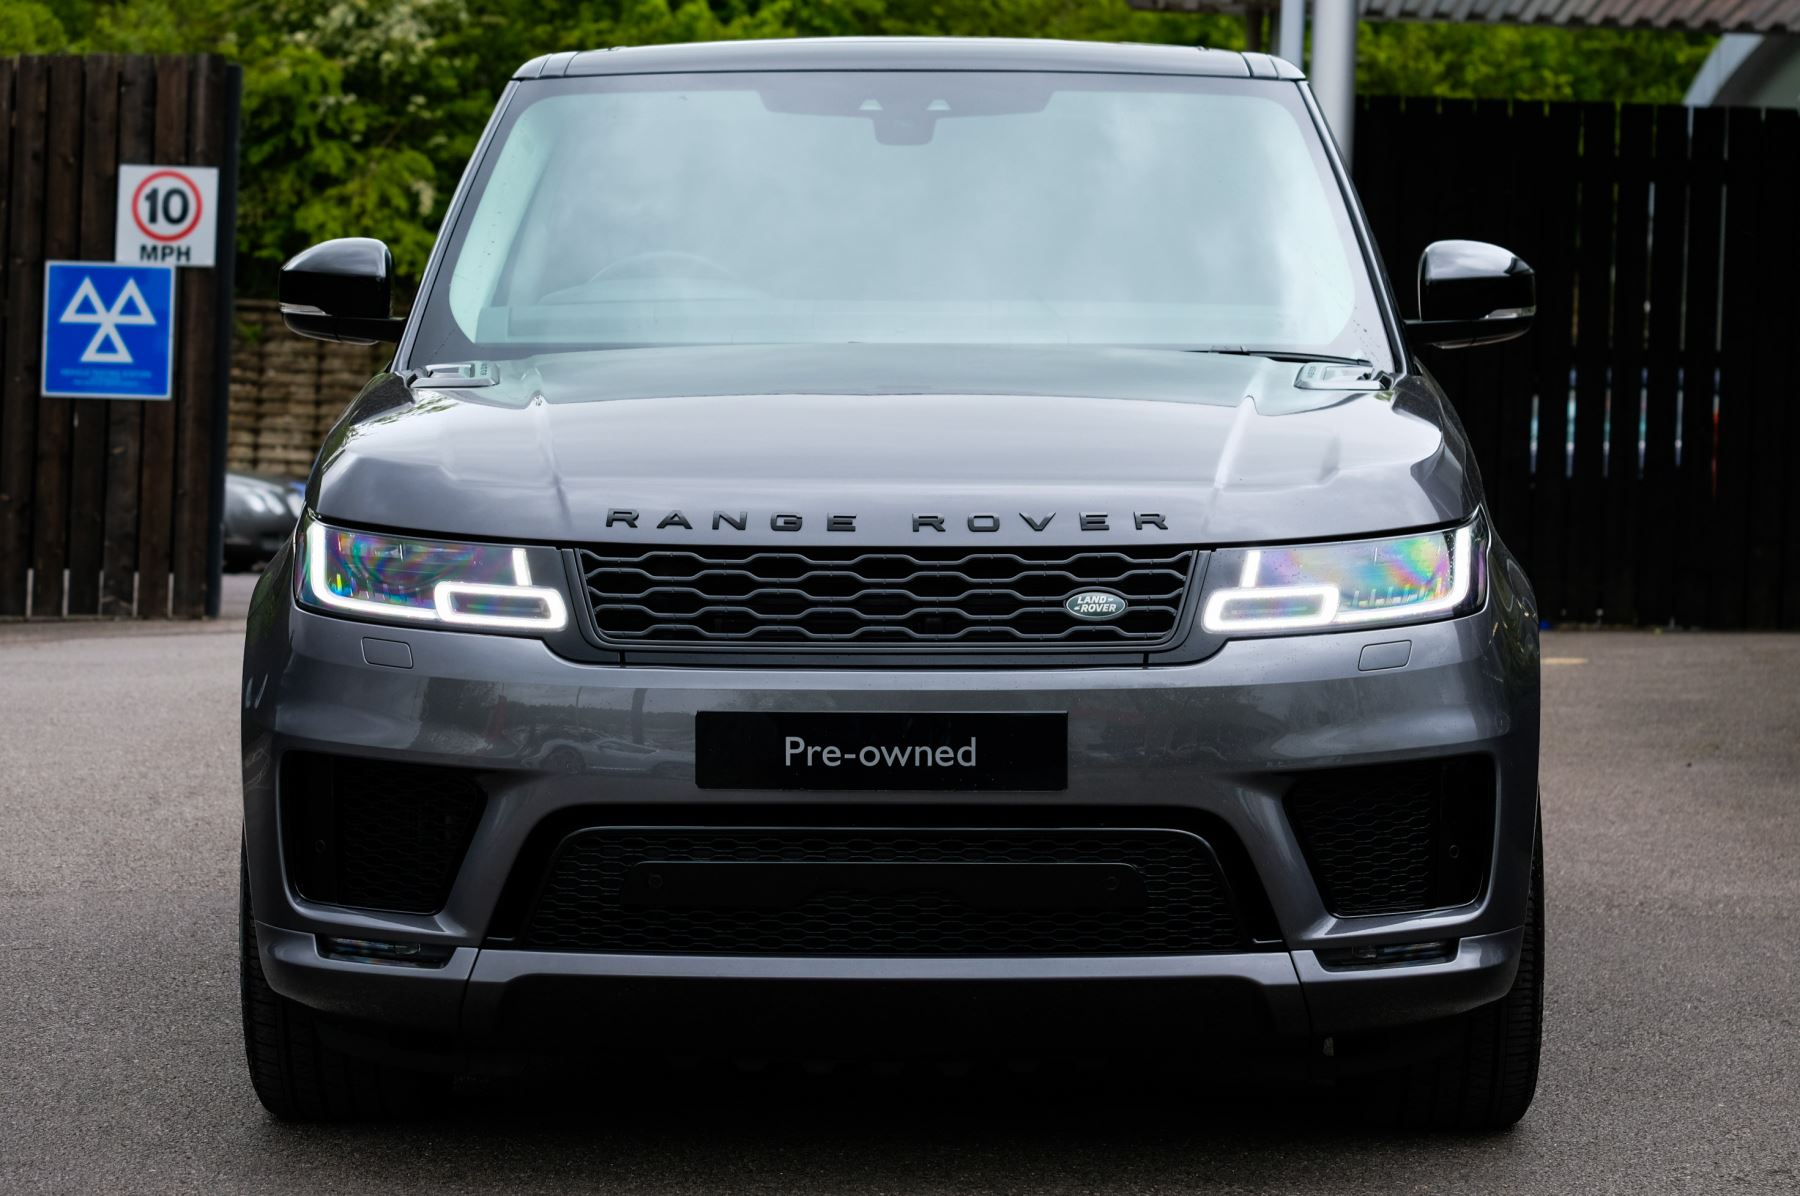 Land Rover Range Rover Sport 3.0 SDV6 Autobiography Dynamic 5dr [7 Seat] - Rear Seat Entertainment - 21 Inch Alloys image 2